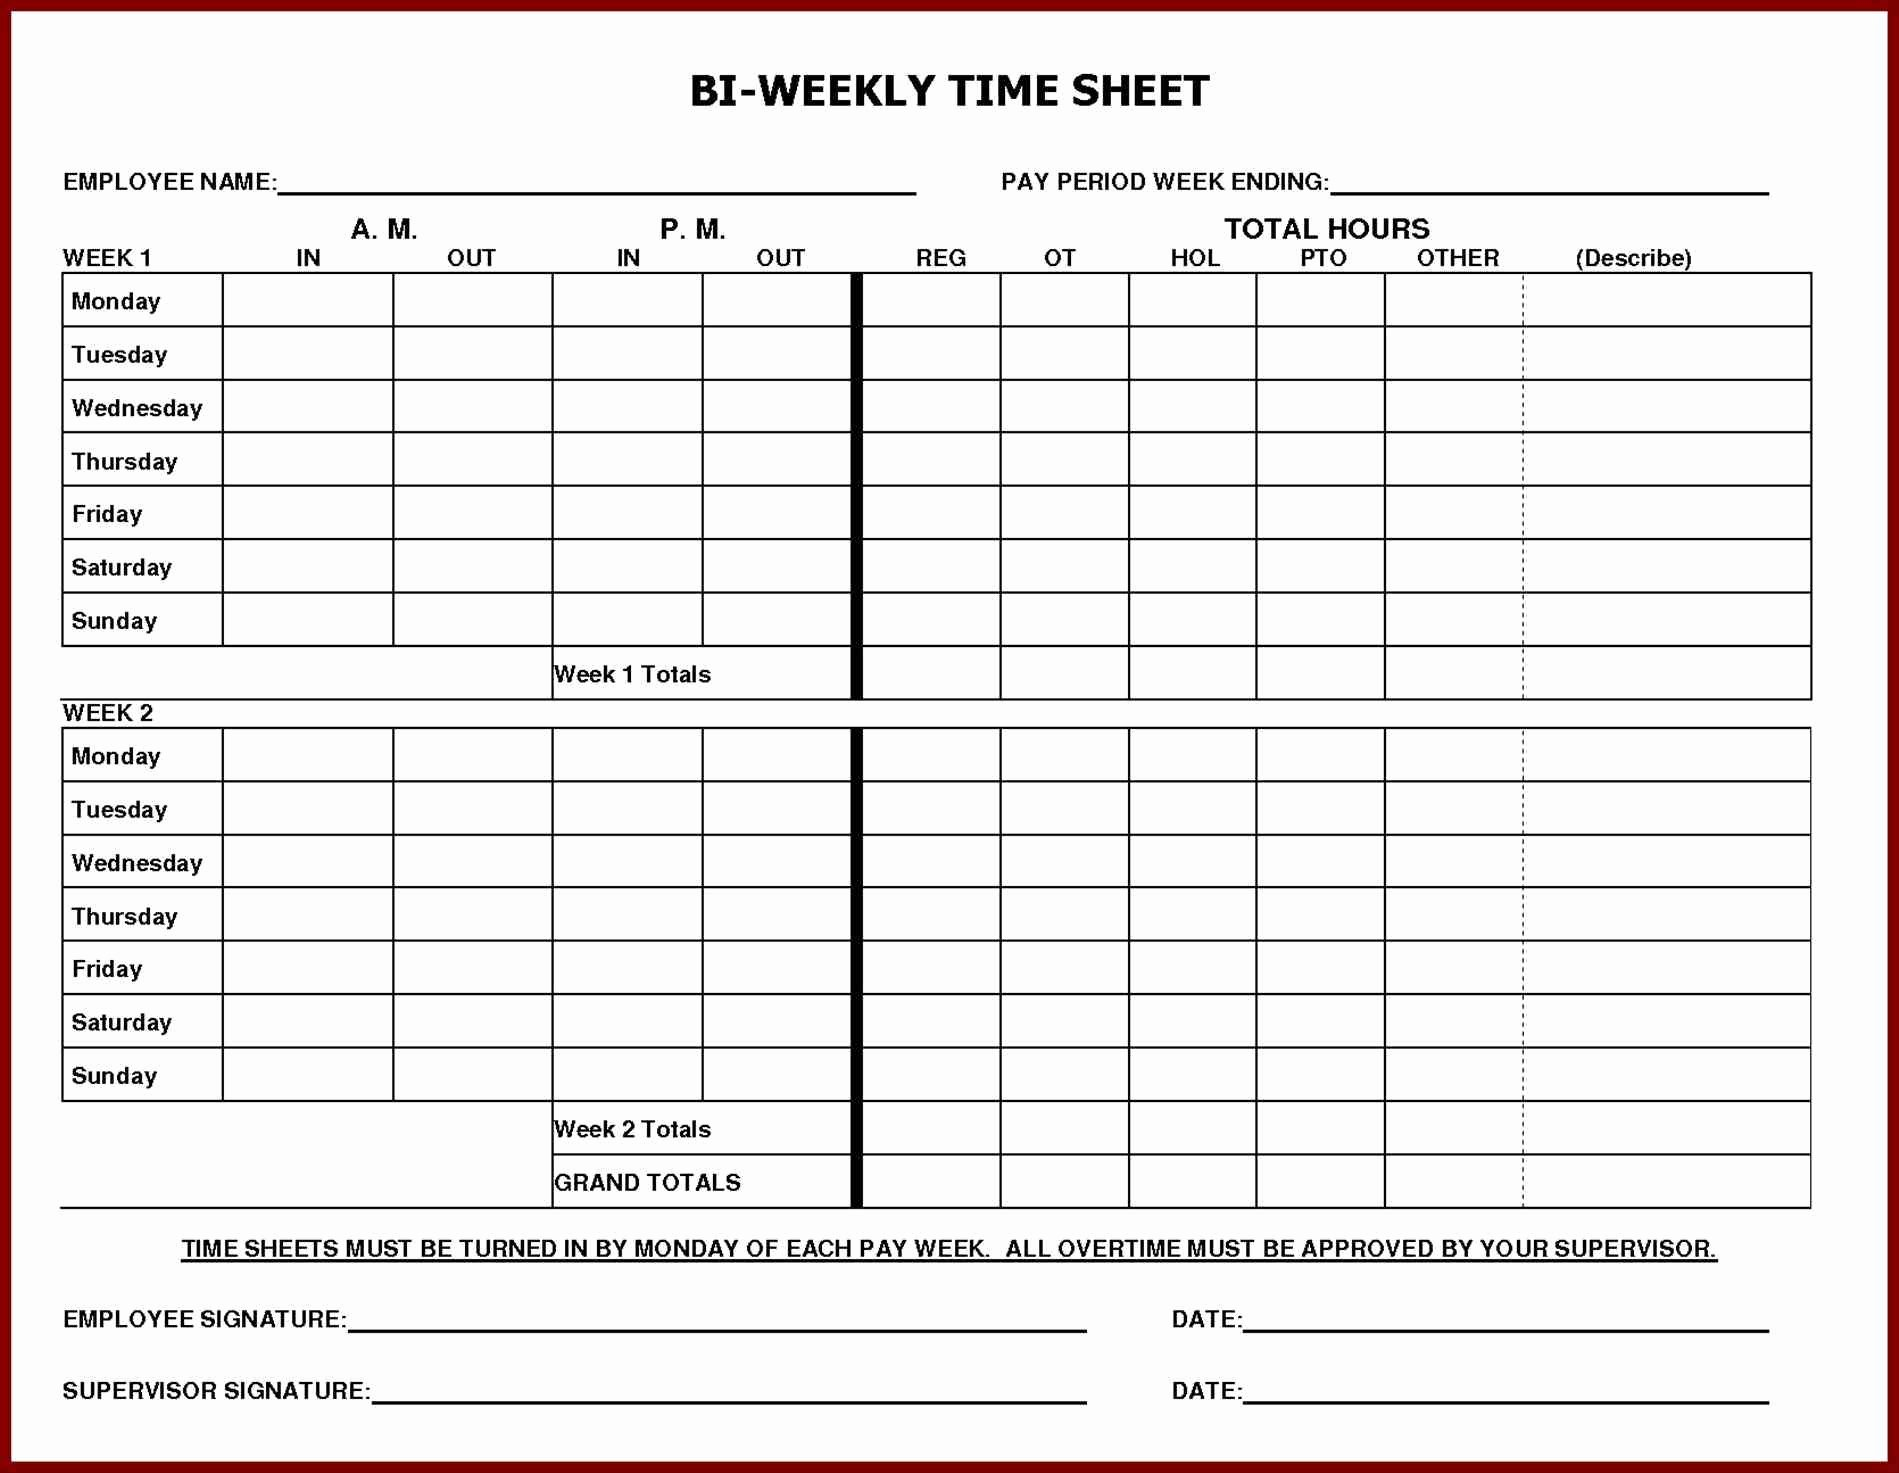 Work Time Sheet Template Luxury Daily Time Sheet Printable Printable 360 Degree